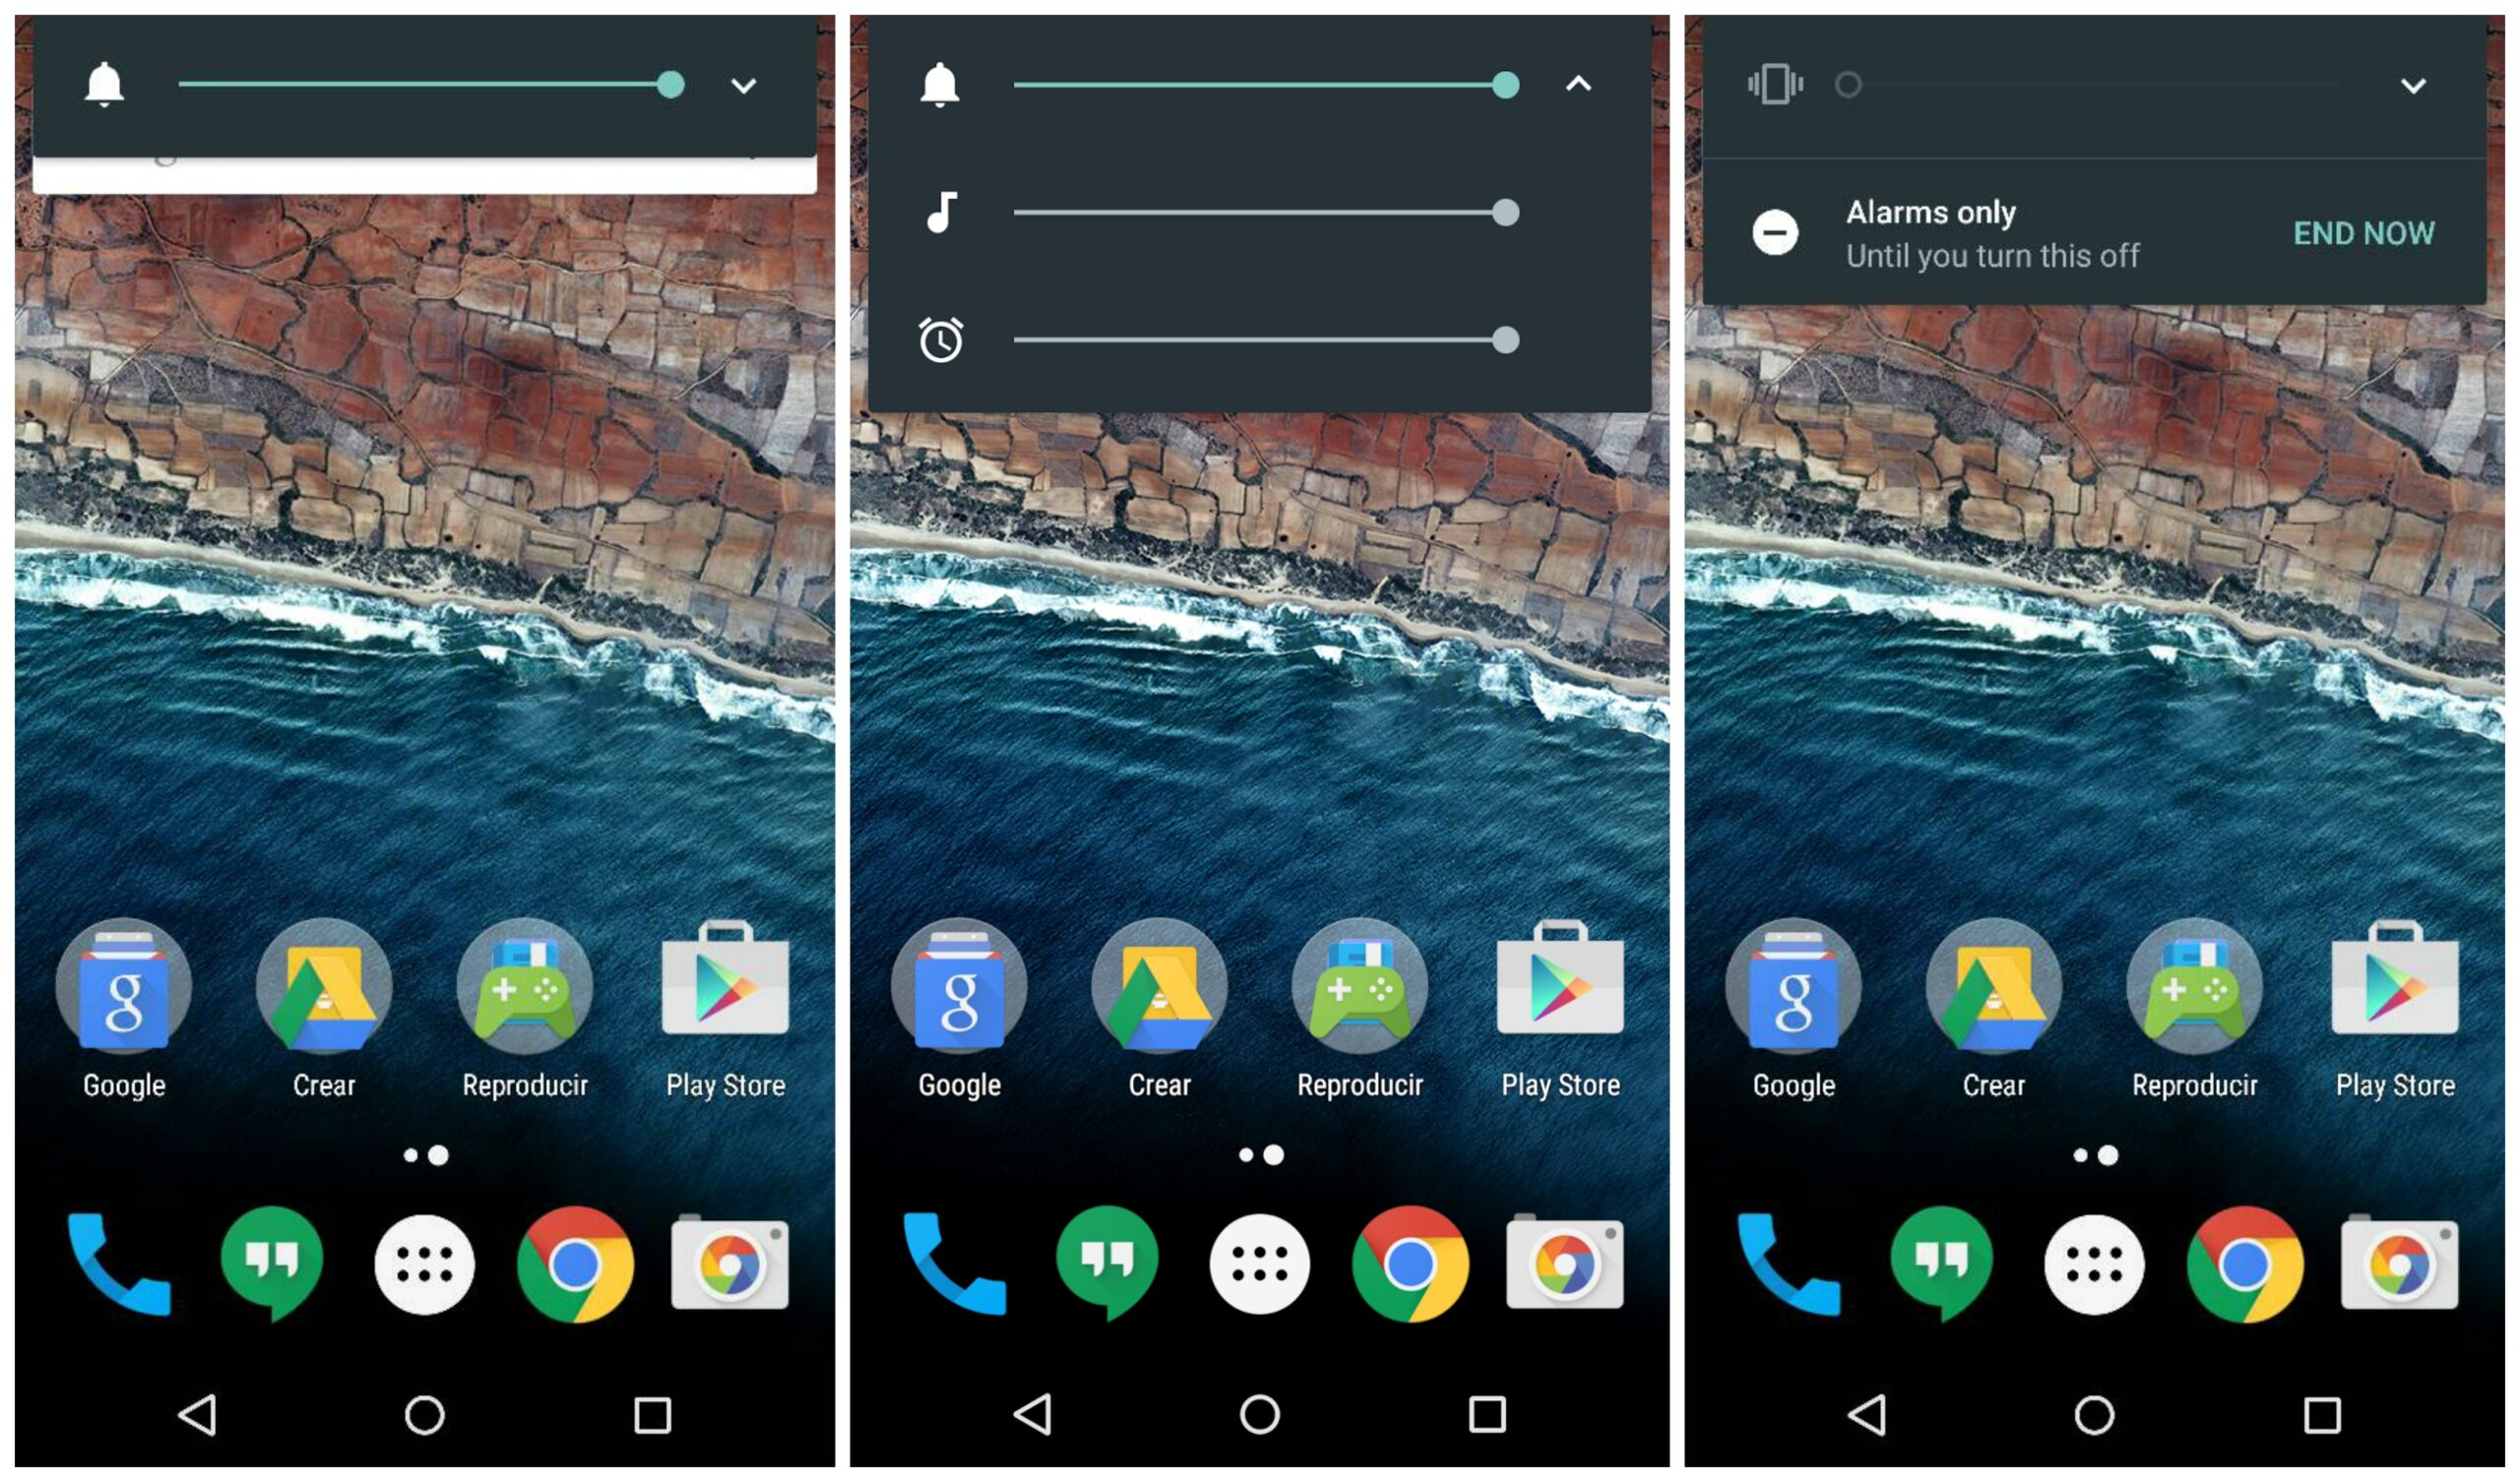 Android M sound controls scaled